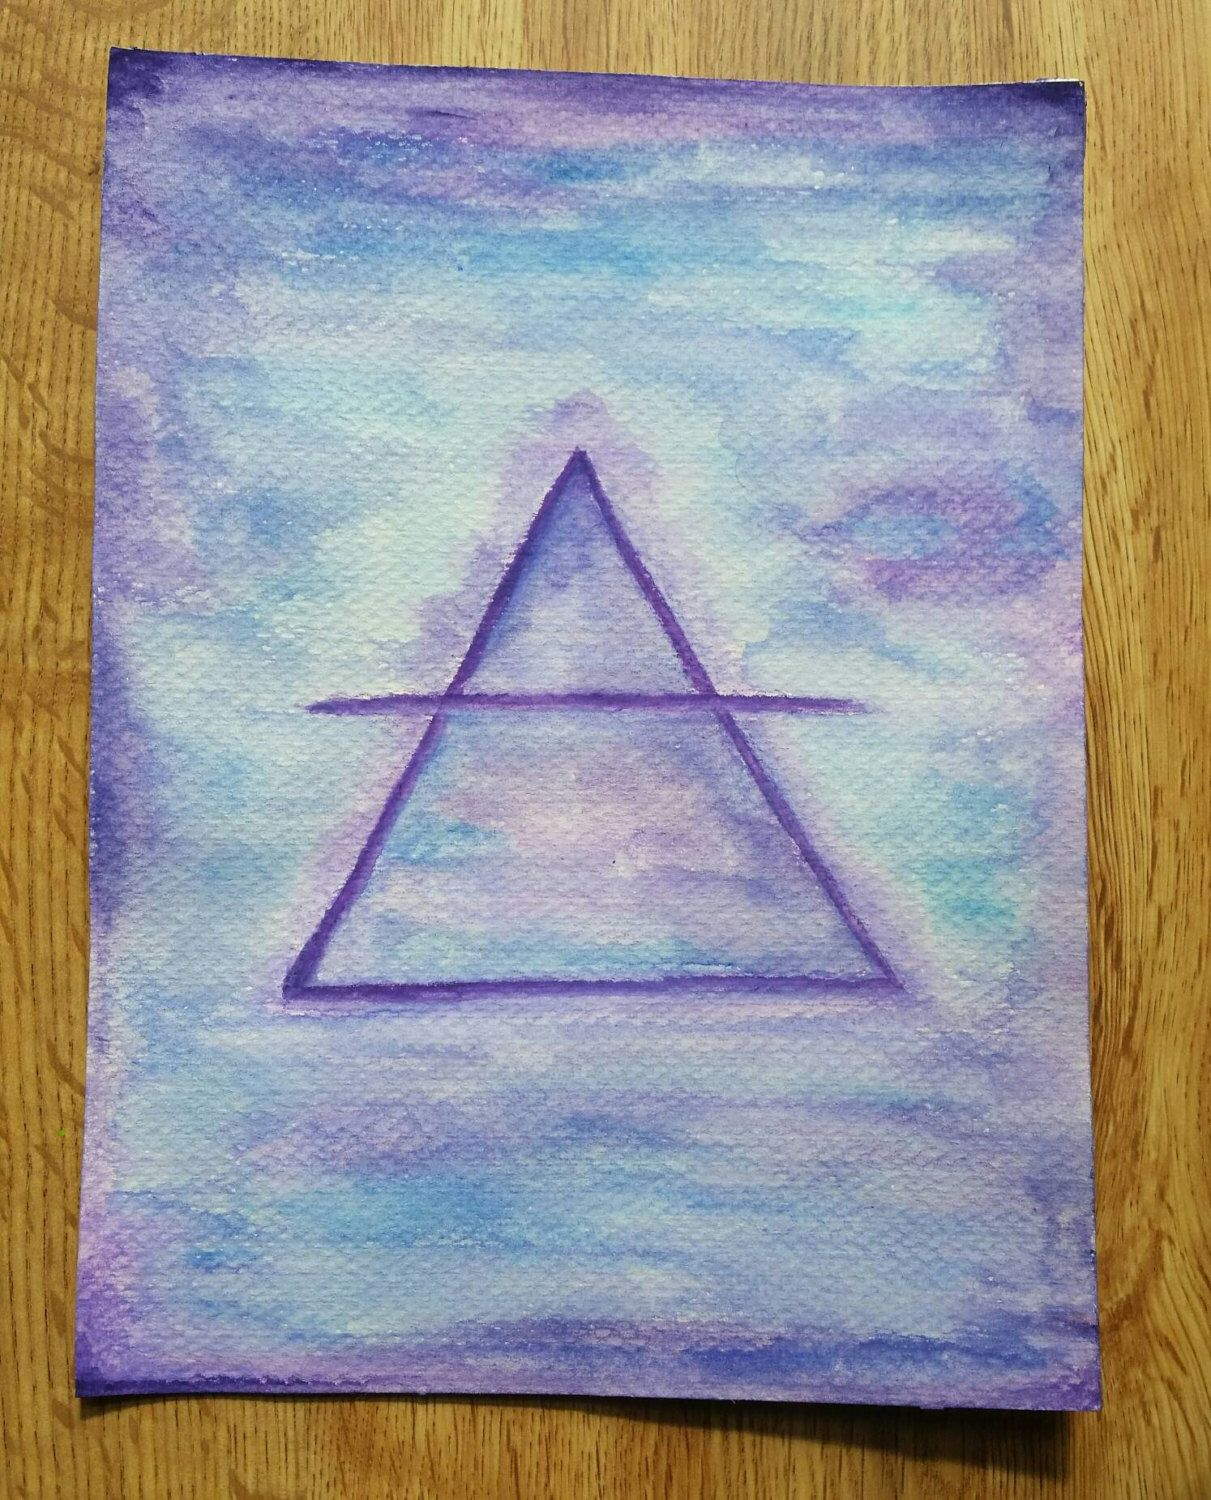 SALE: AIR Element Alchemy Symbol Watercolor Energy Painting | Alchemy  symbols, Painting, Symbols